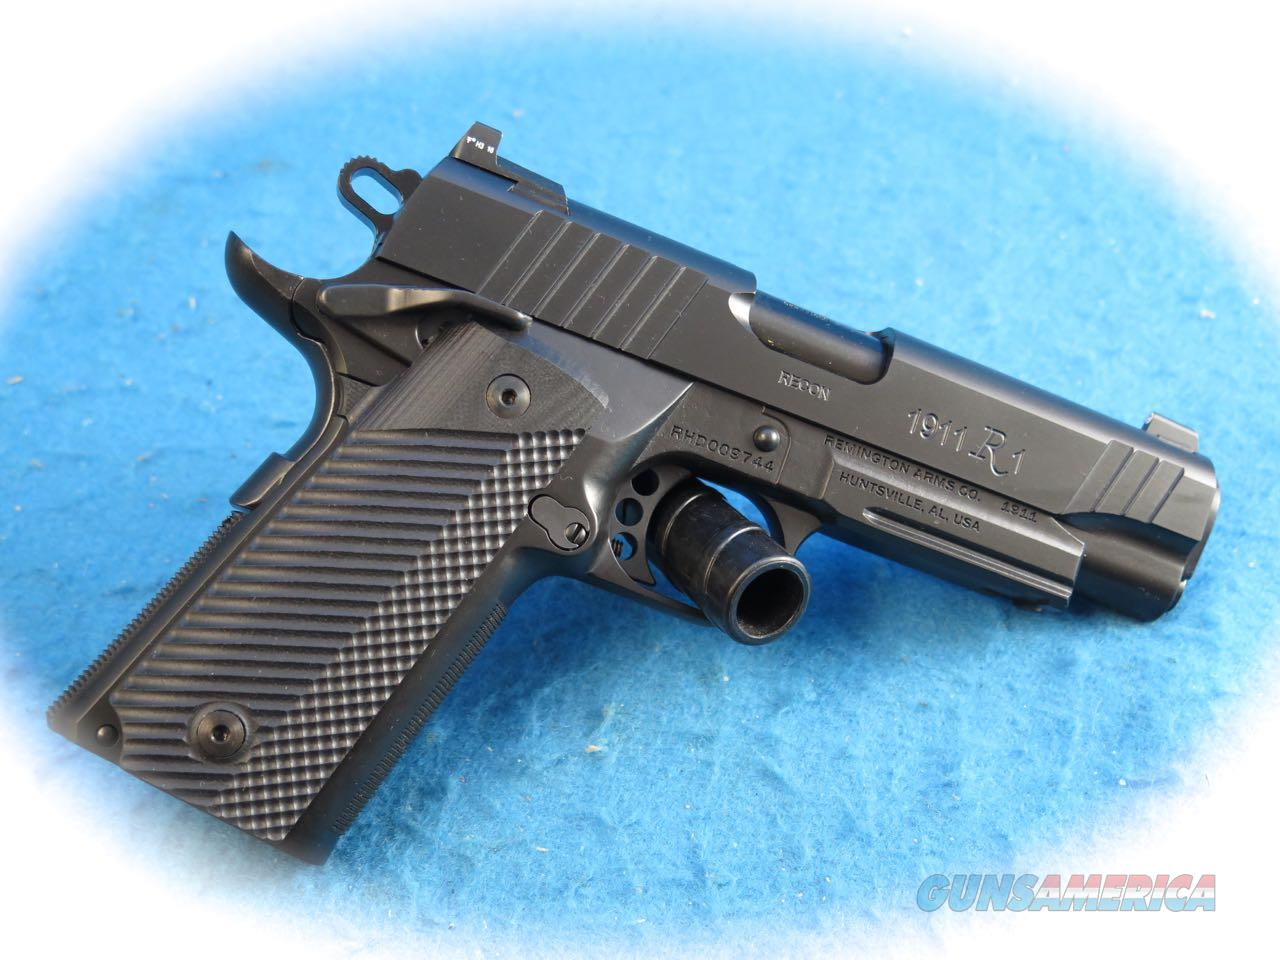 Remington 1911 R1 Recon Commander 9mm Pistol Model 96490 **New**  Guns > Pistols > Remington Pistols - Modern > 1911